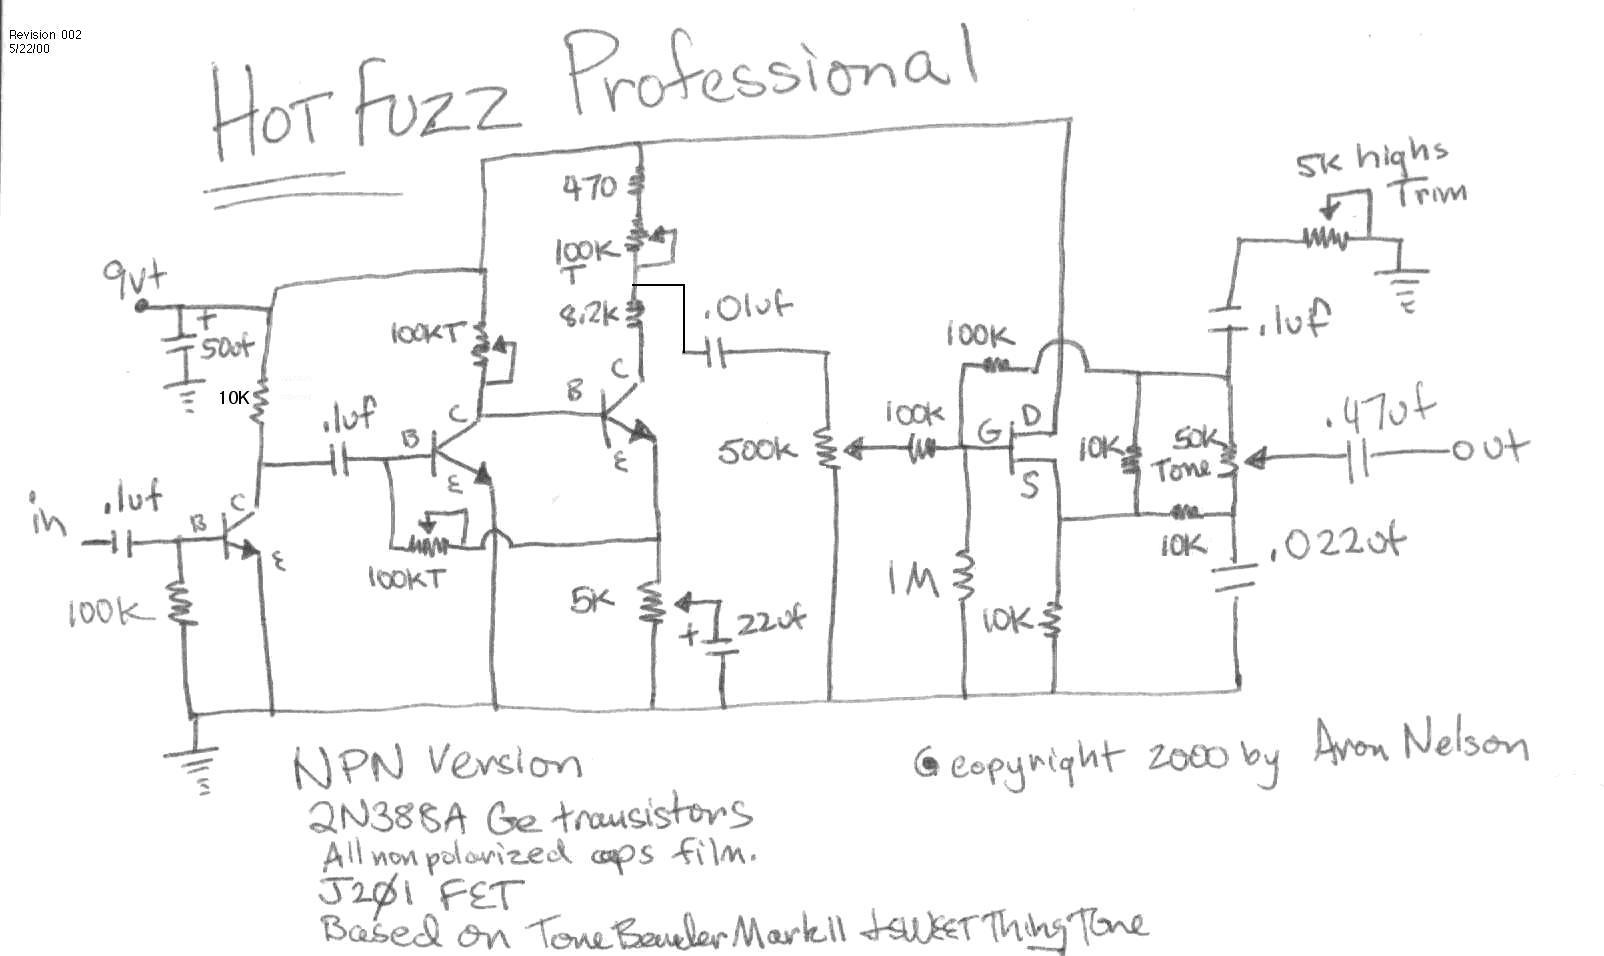 Selected Schematics Circuit Used In Experiment The Diode Is A 1n914 Silicon Hot Fuzz My Take On Colorsound Tone Bender Professional Mark Ii With Sweet Thing Control Im Still Working This One So Stay Tuned